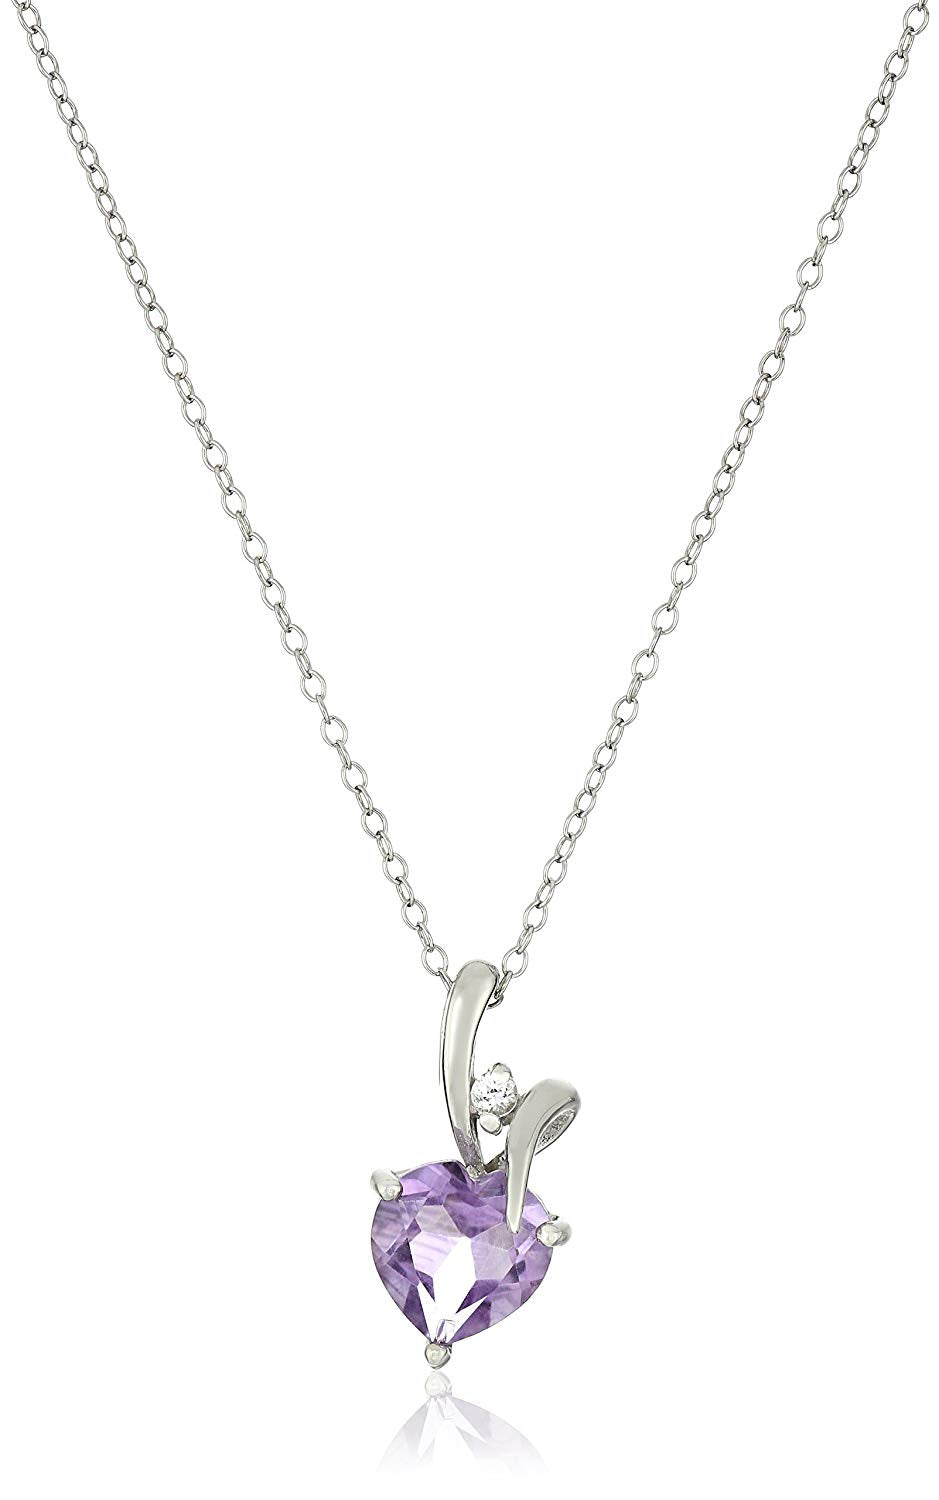 Sterling Silver Gemstone Pendant Necklace